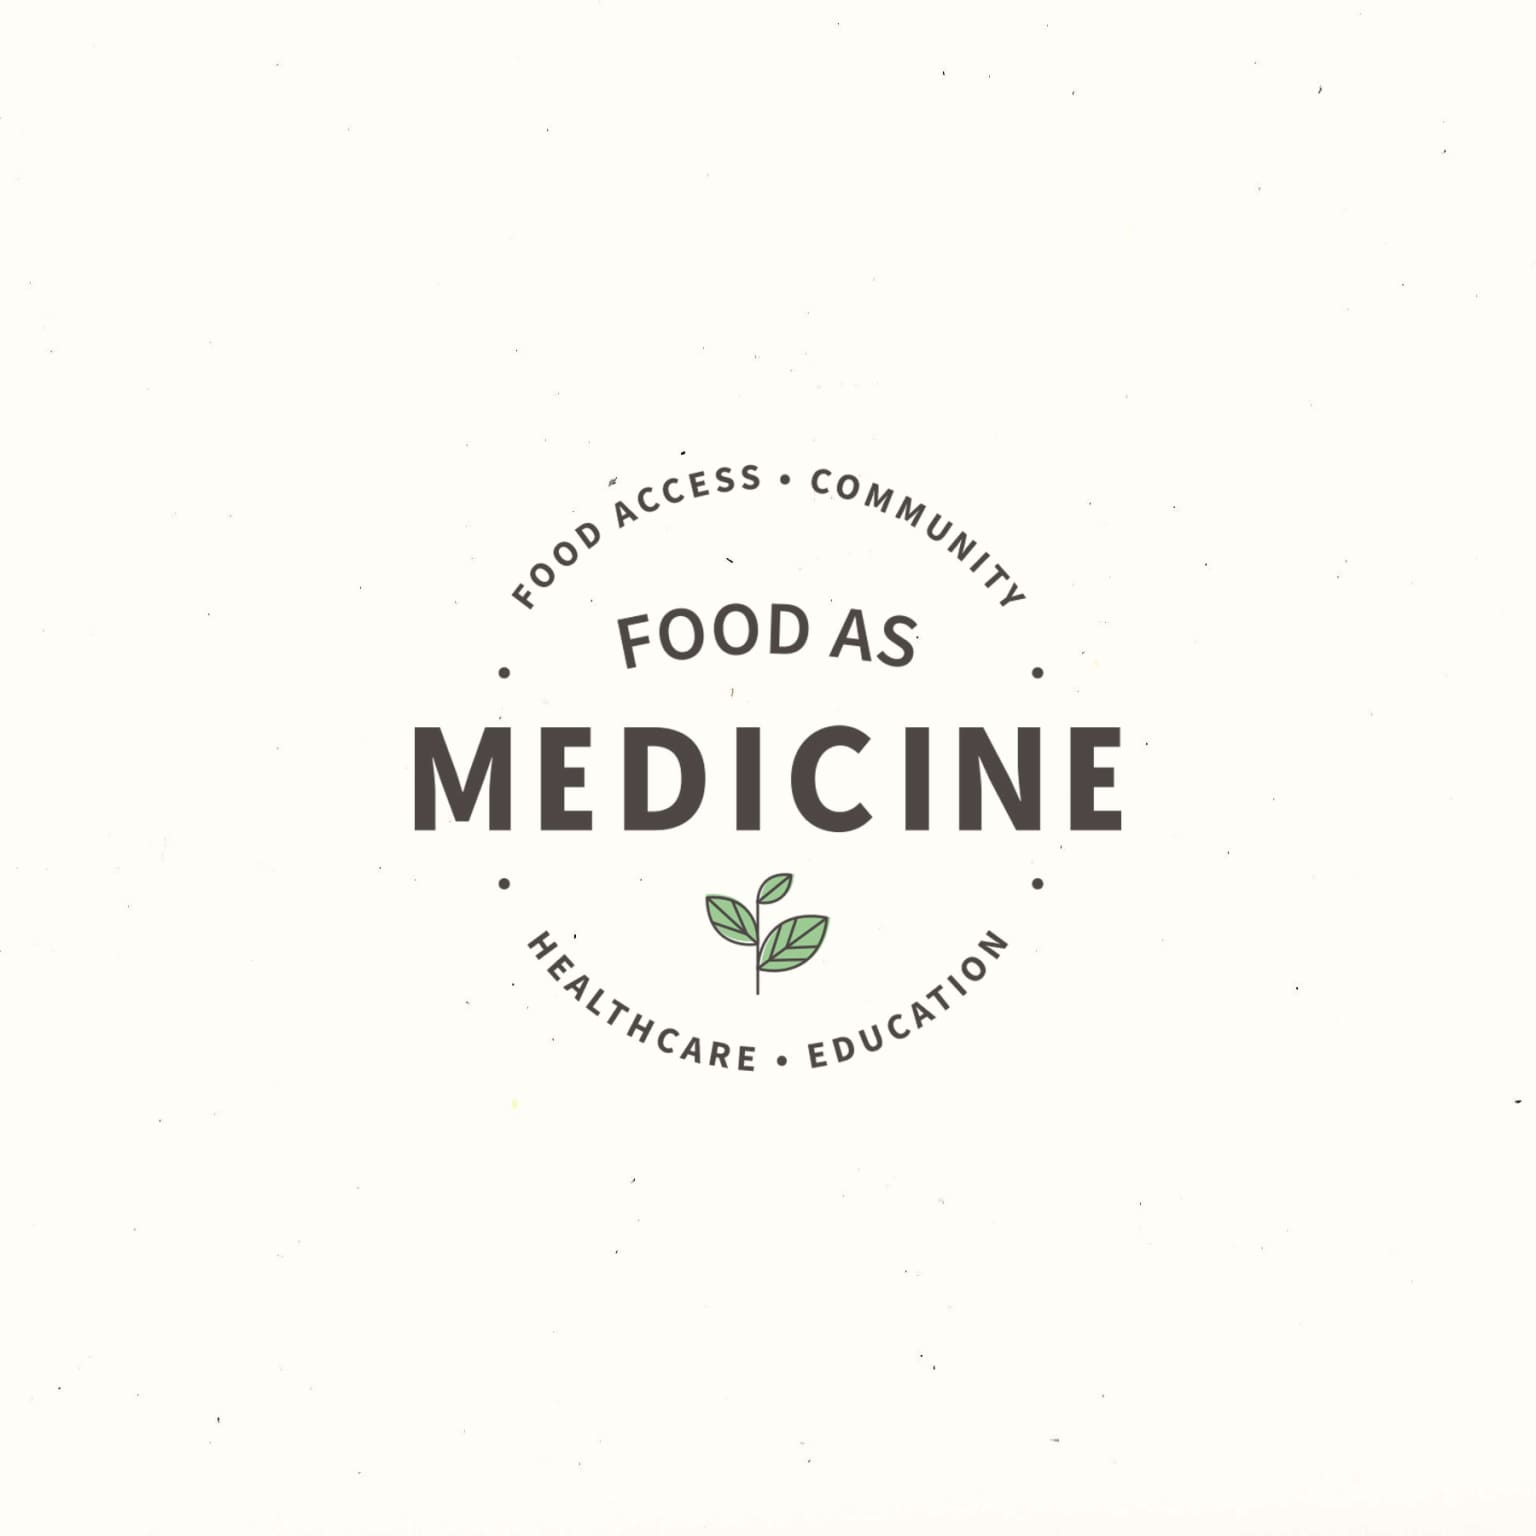 Food as Medicine Branding & Collateral